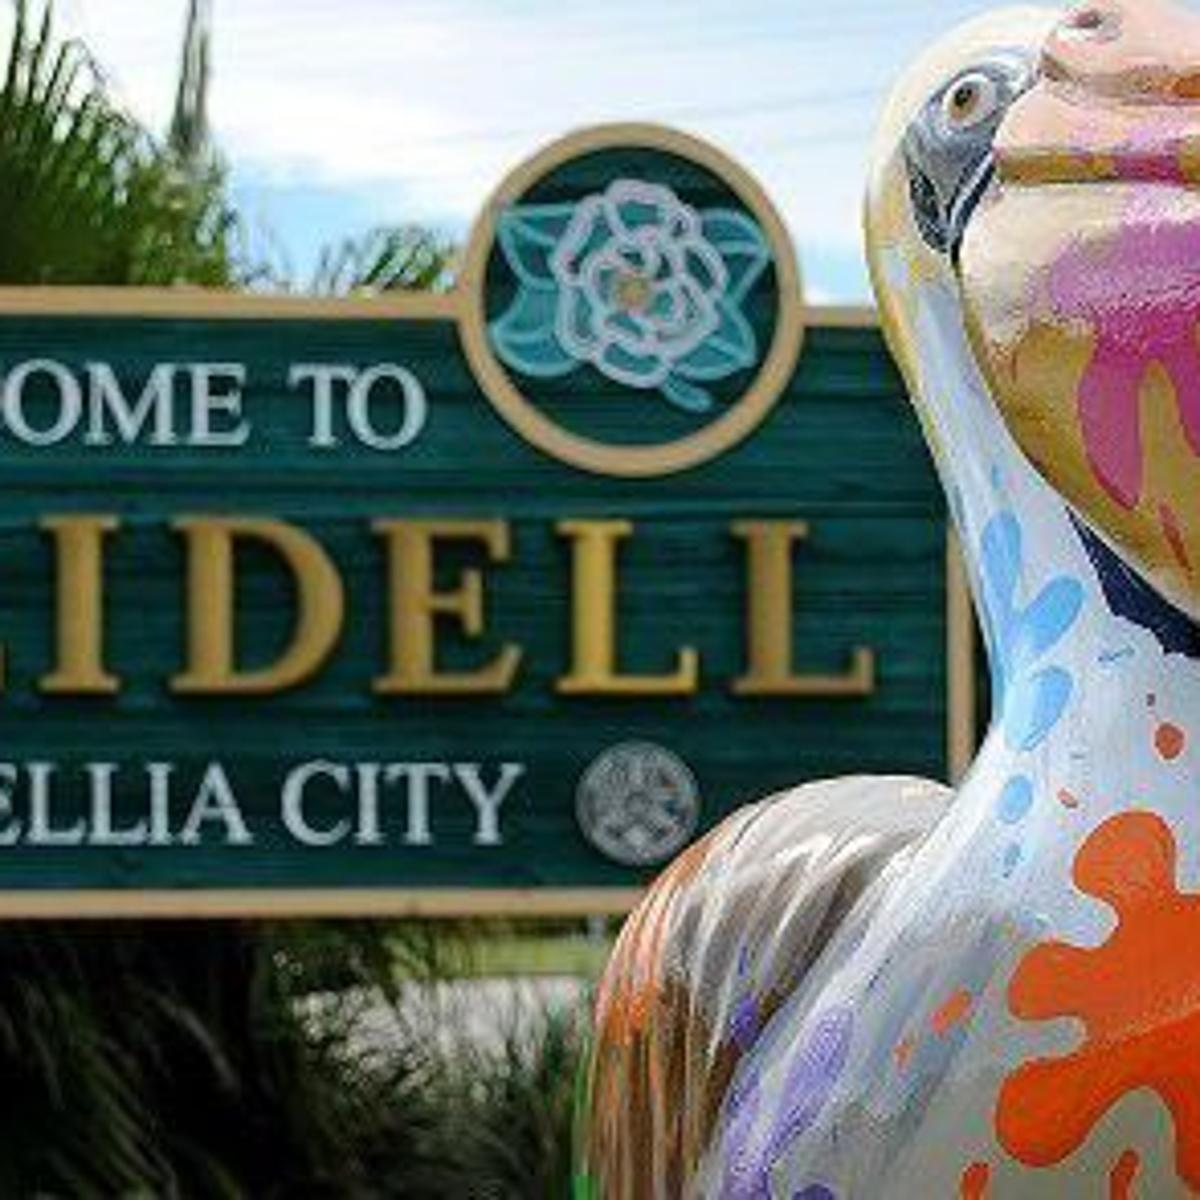 Slidell council annexes 4 acres for Tractor Supply Co  store